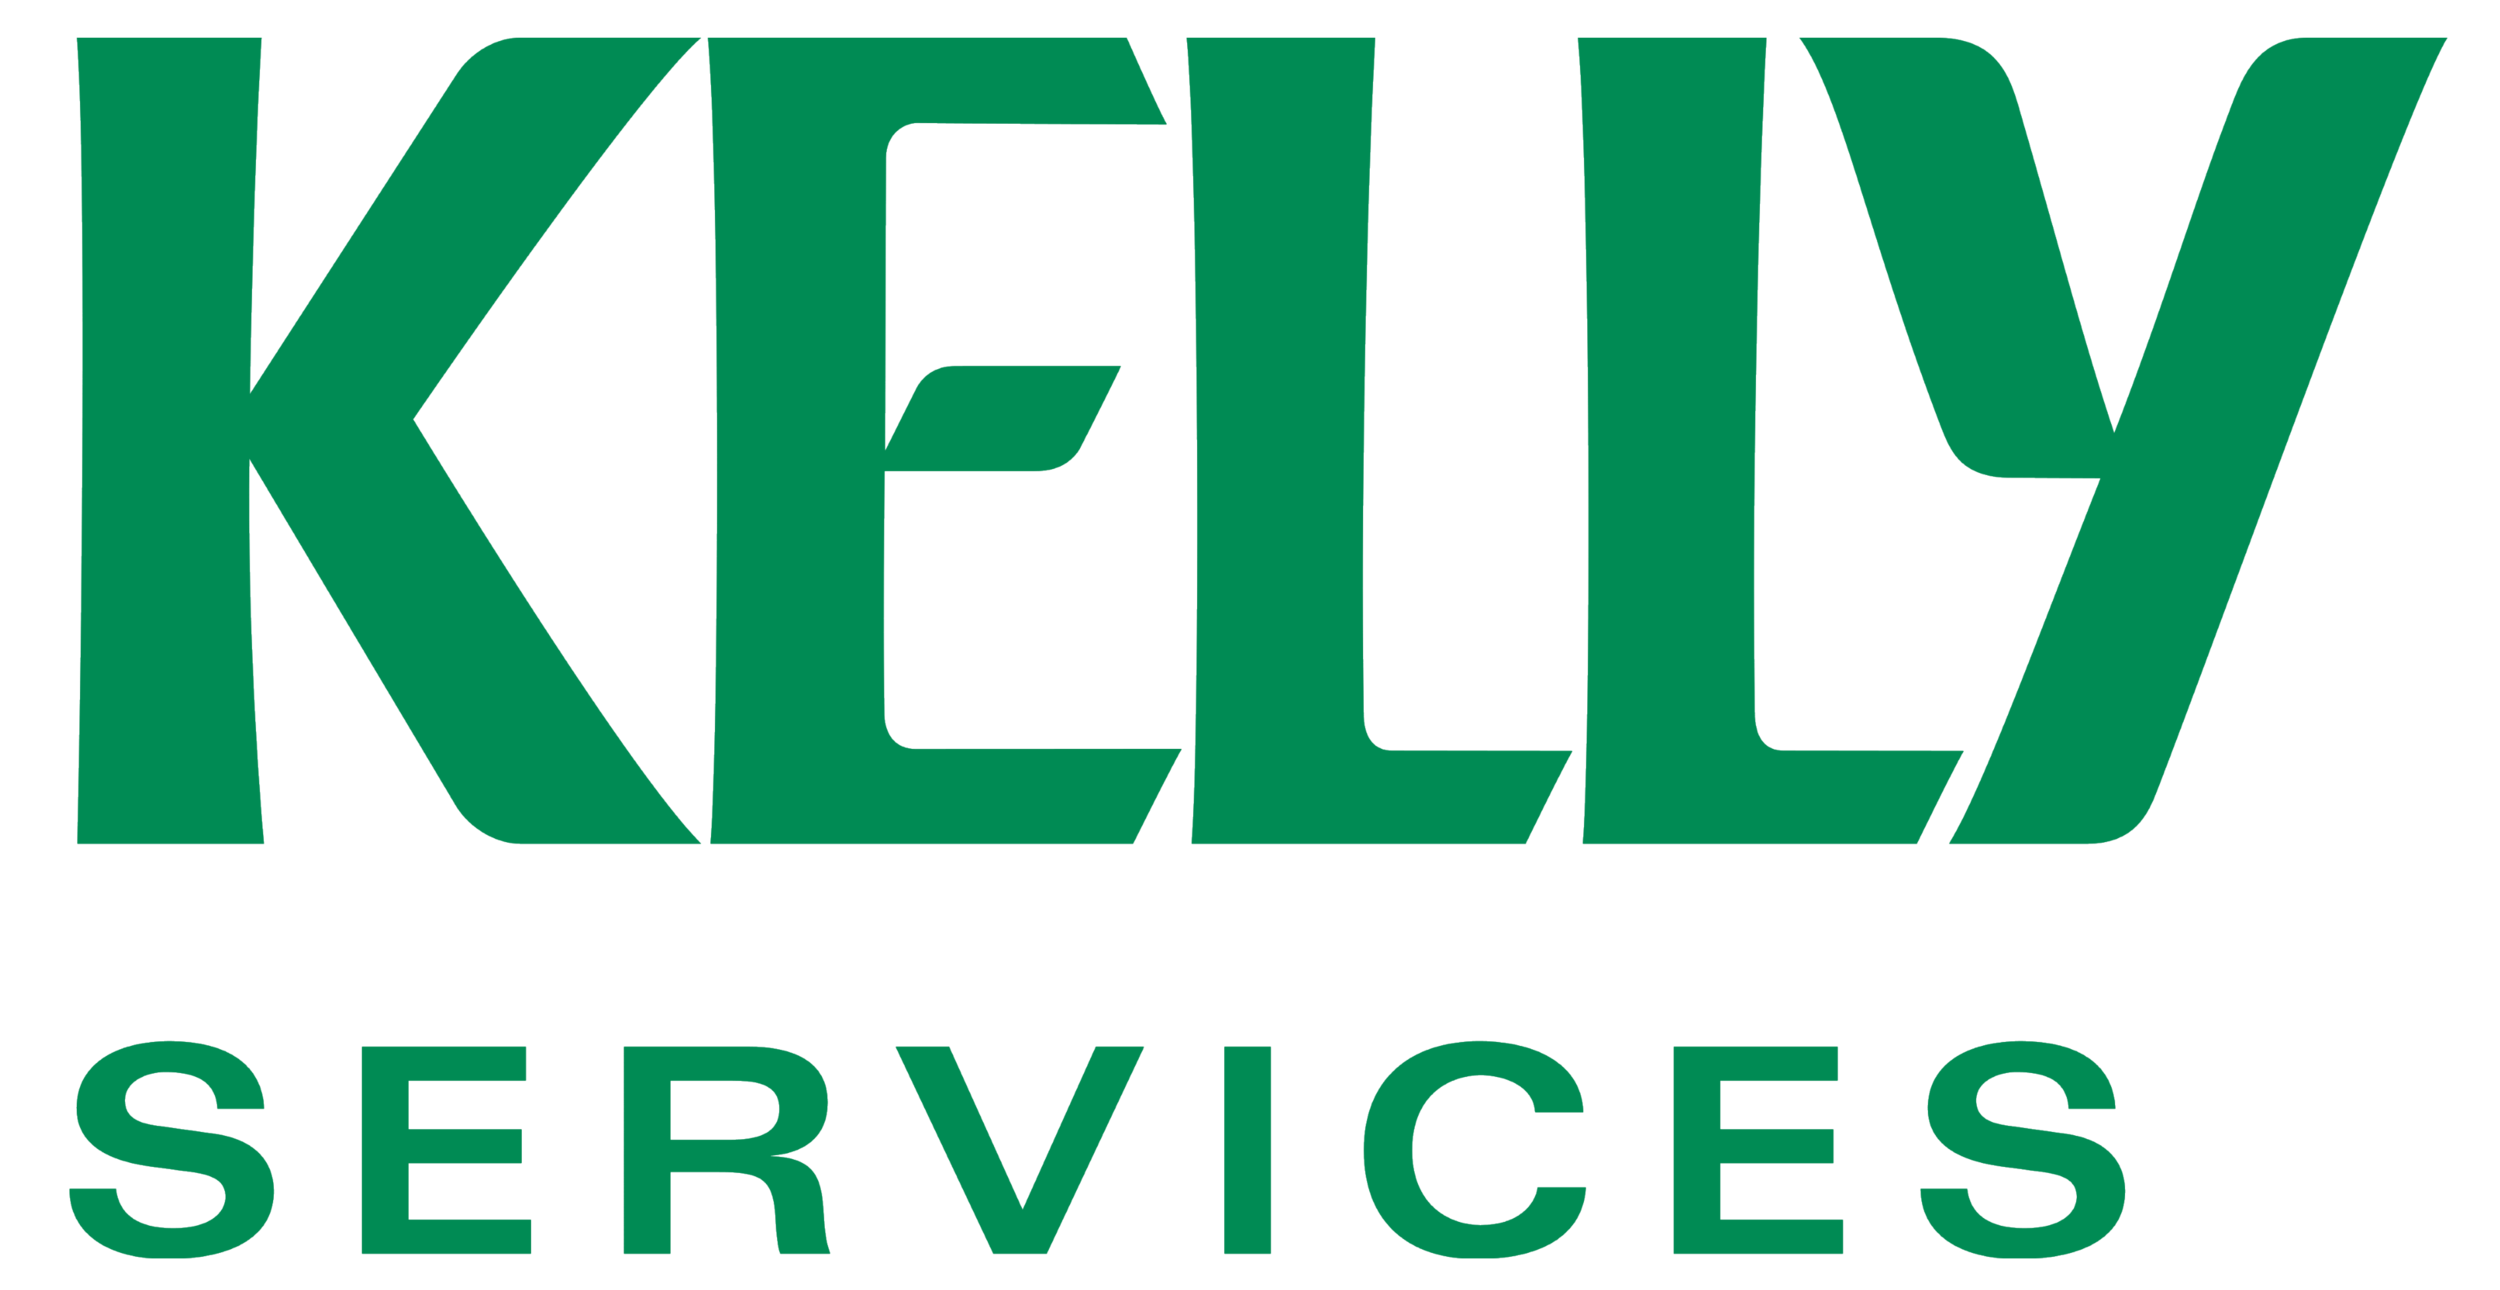 Kelly_Services_logo_logotype.png